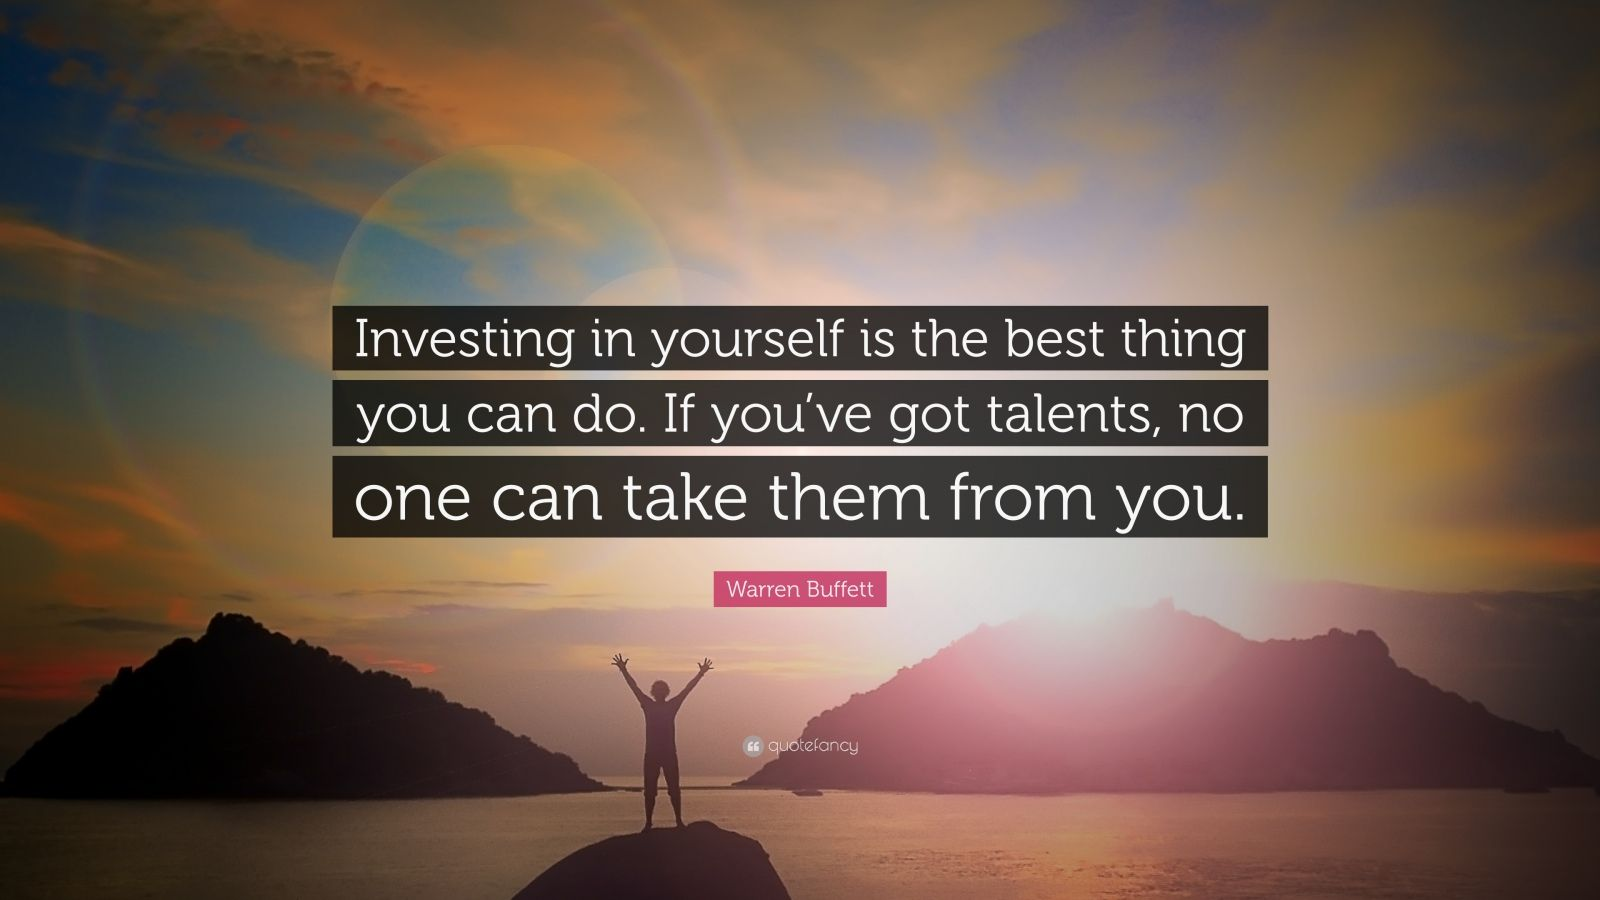 """Warren Buffett Quote: """"Investing in yourself is the best thing you can do. If you've got talents, no one can take them from you."""""""